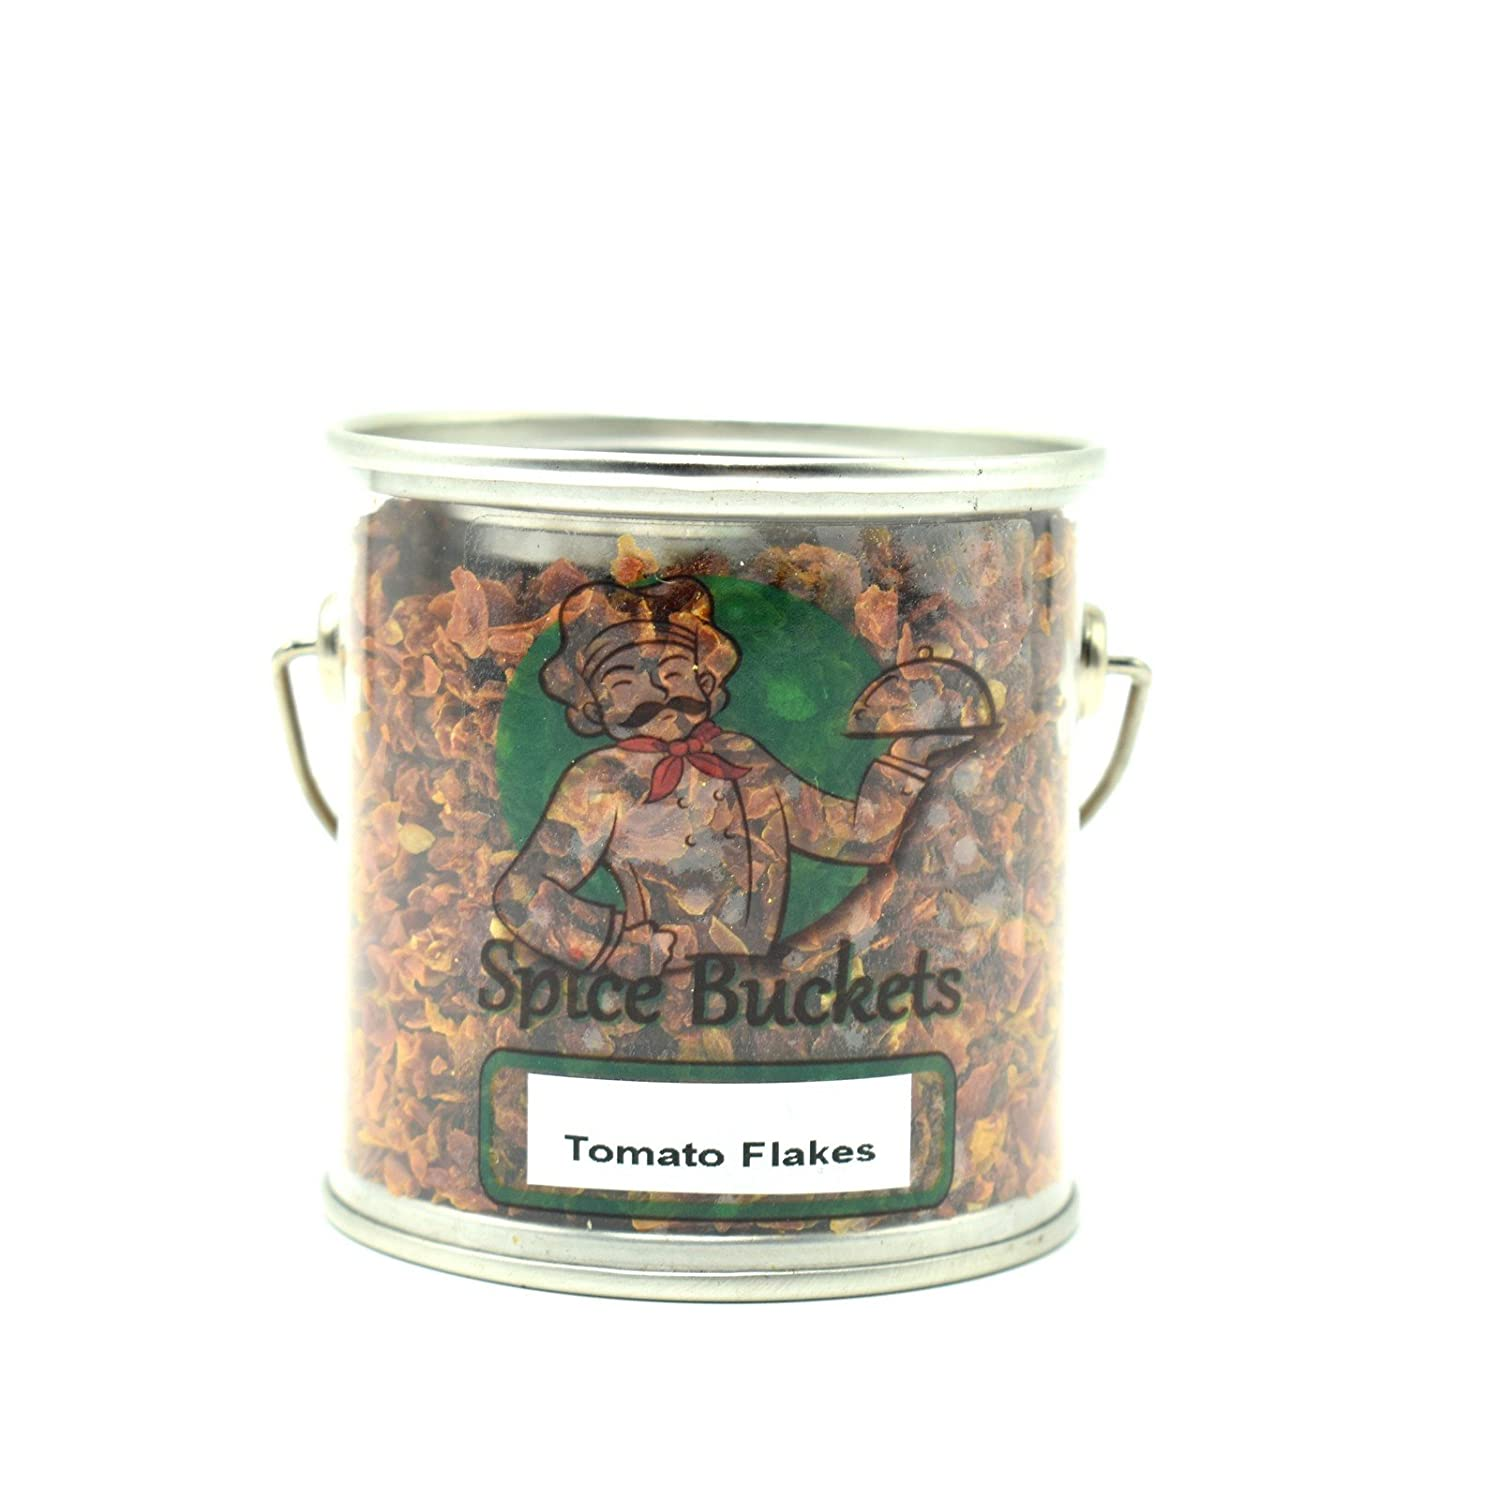 Tomato Flakes 52g in Spice Rack Bucket FREE UK Post